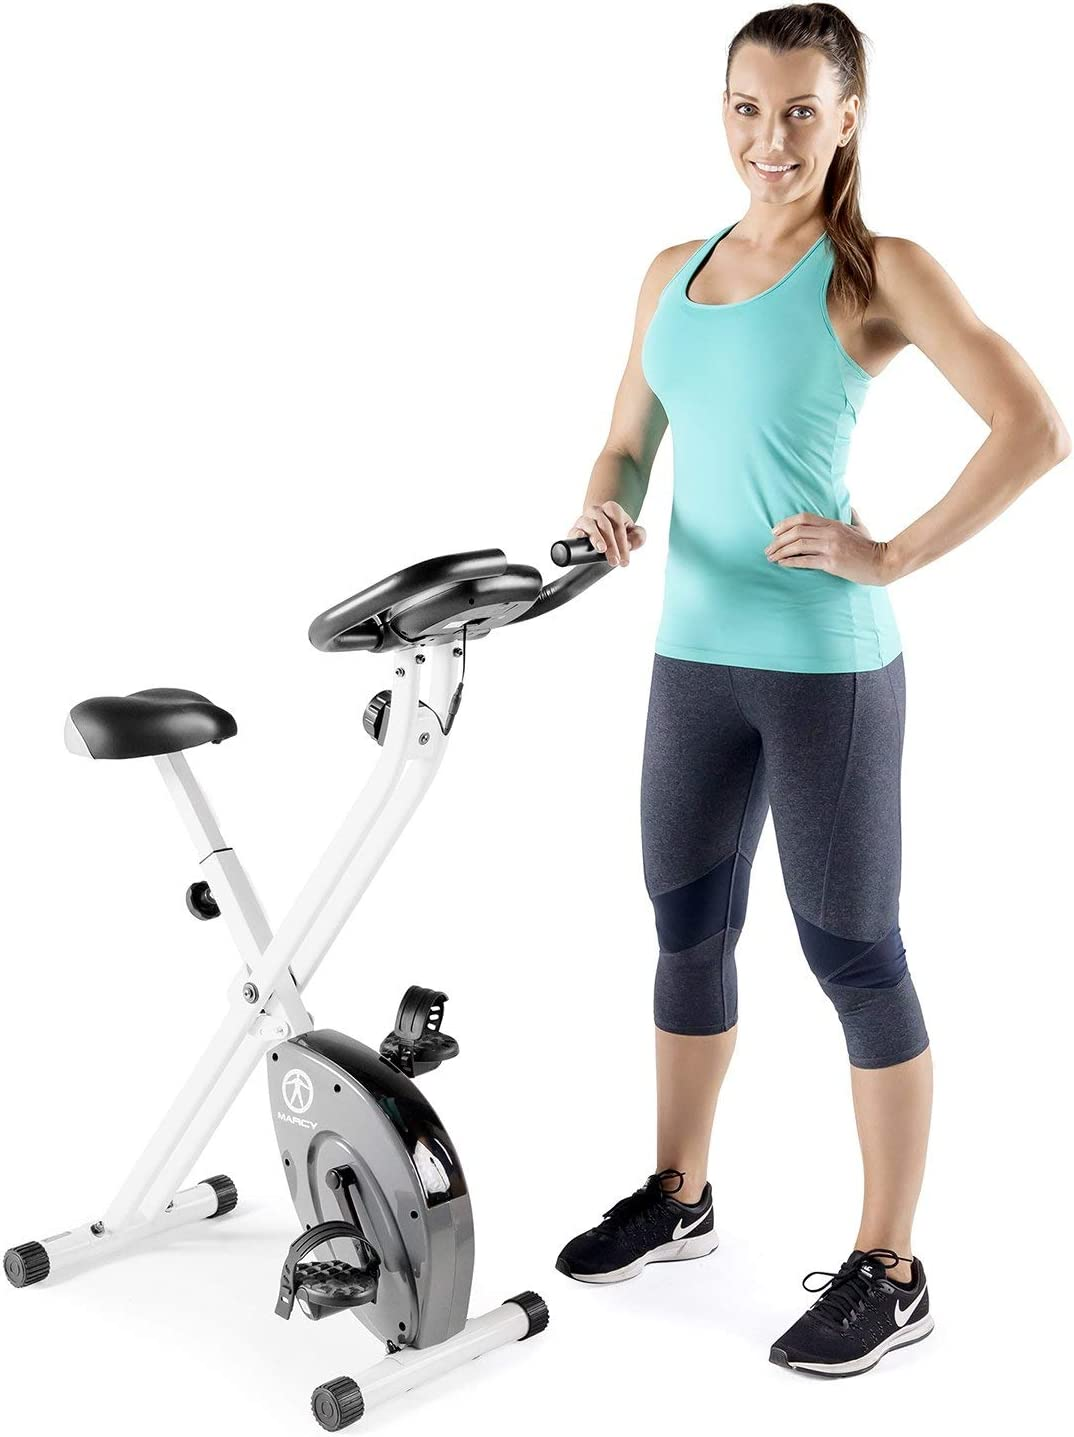 Marcy Foldable Exercise Bike Reviews In 2021 - Best 3 Model 3